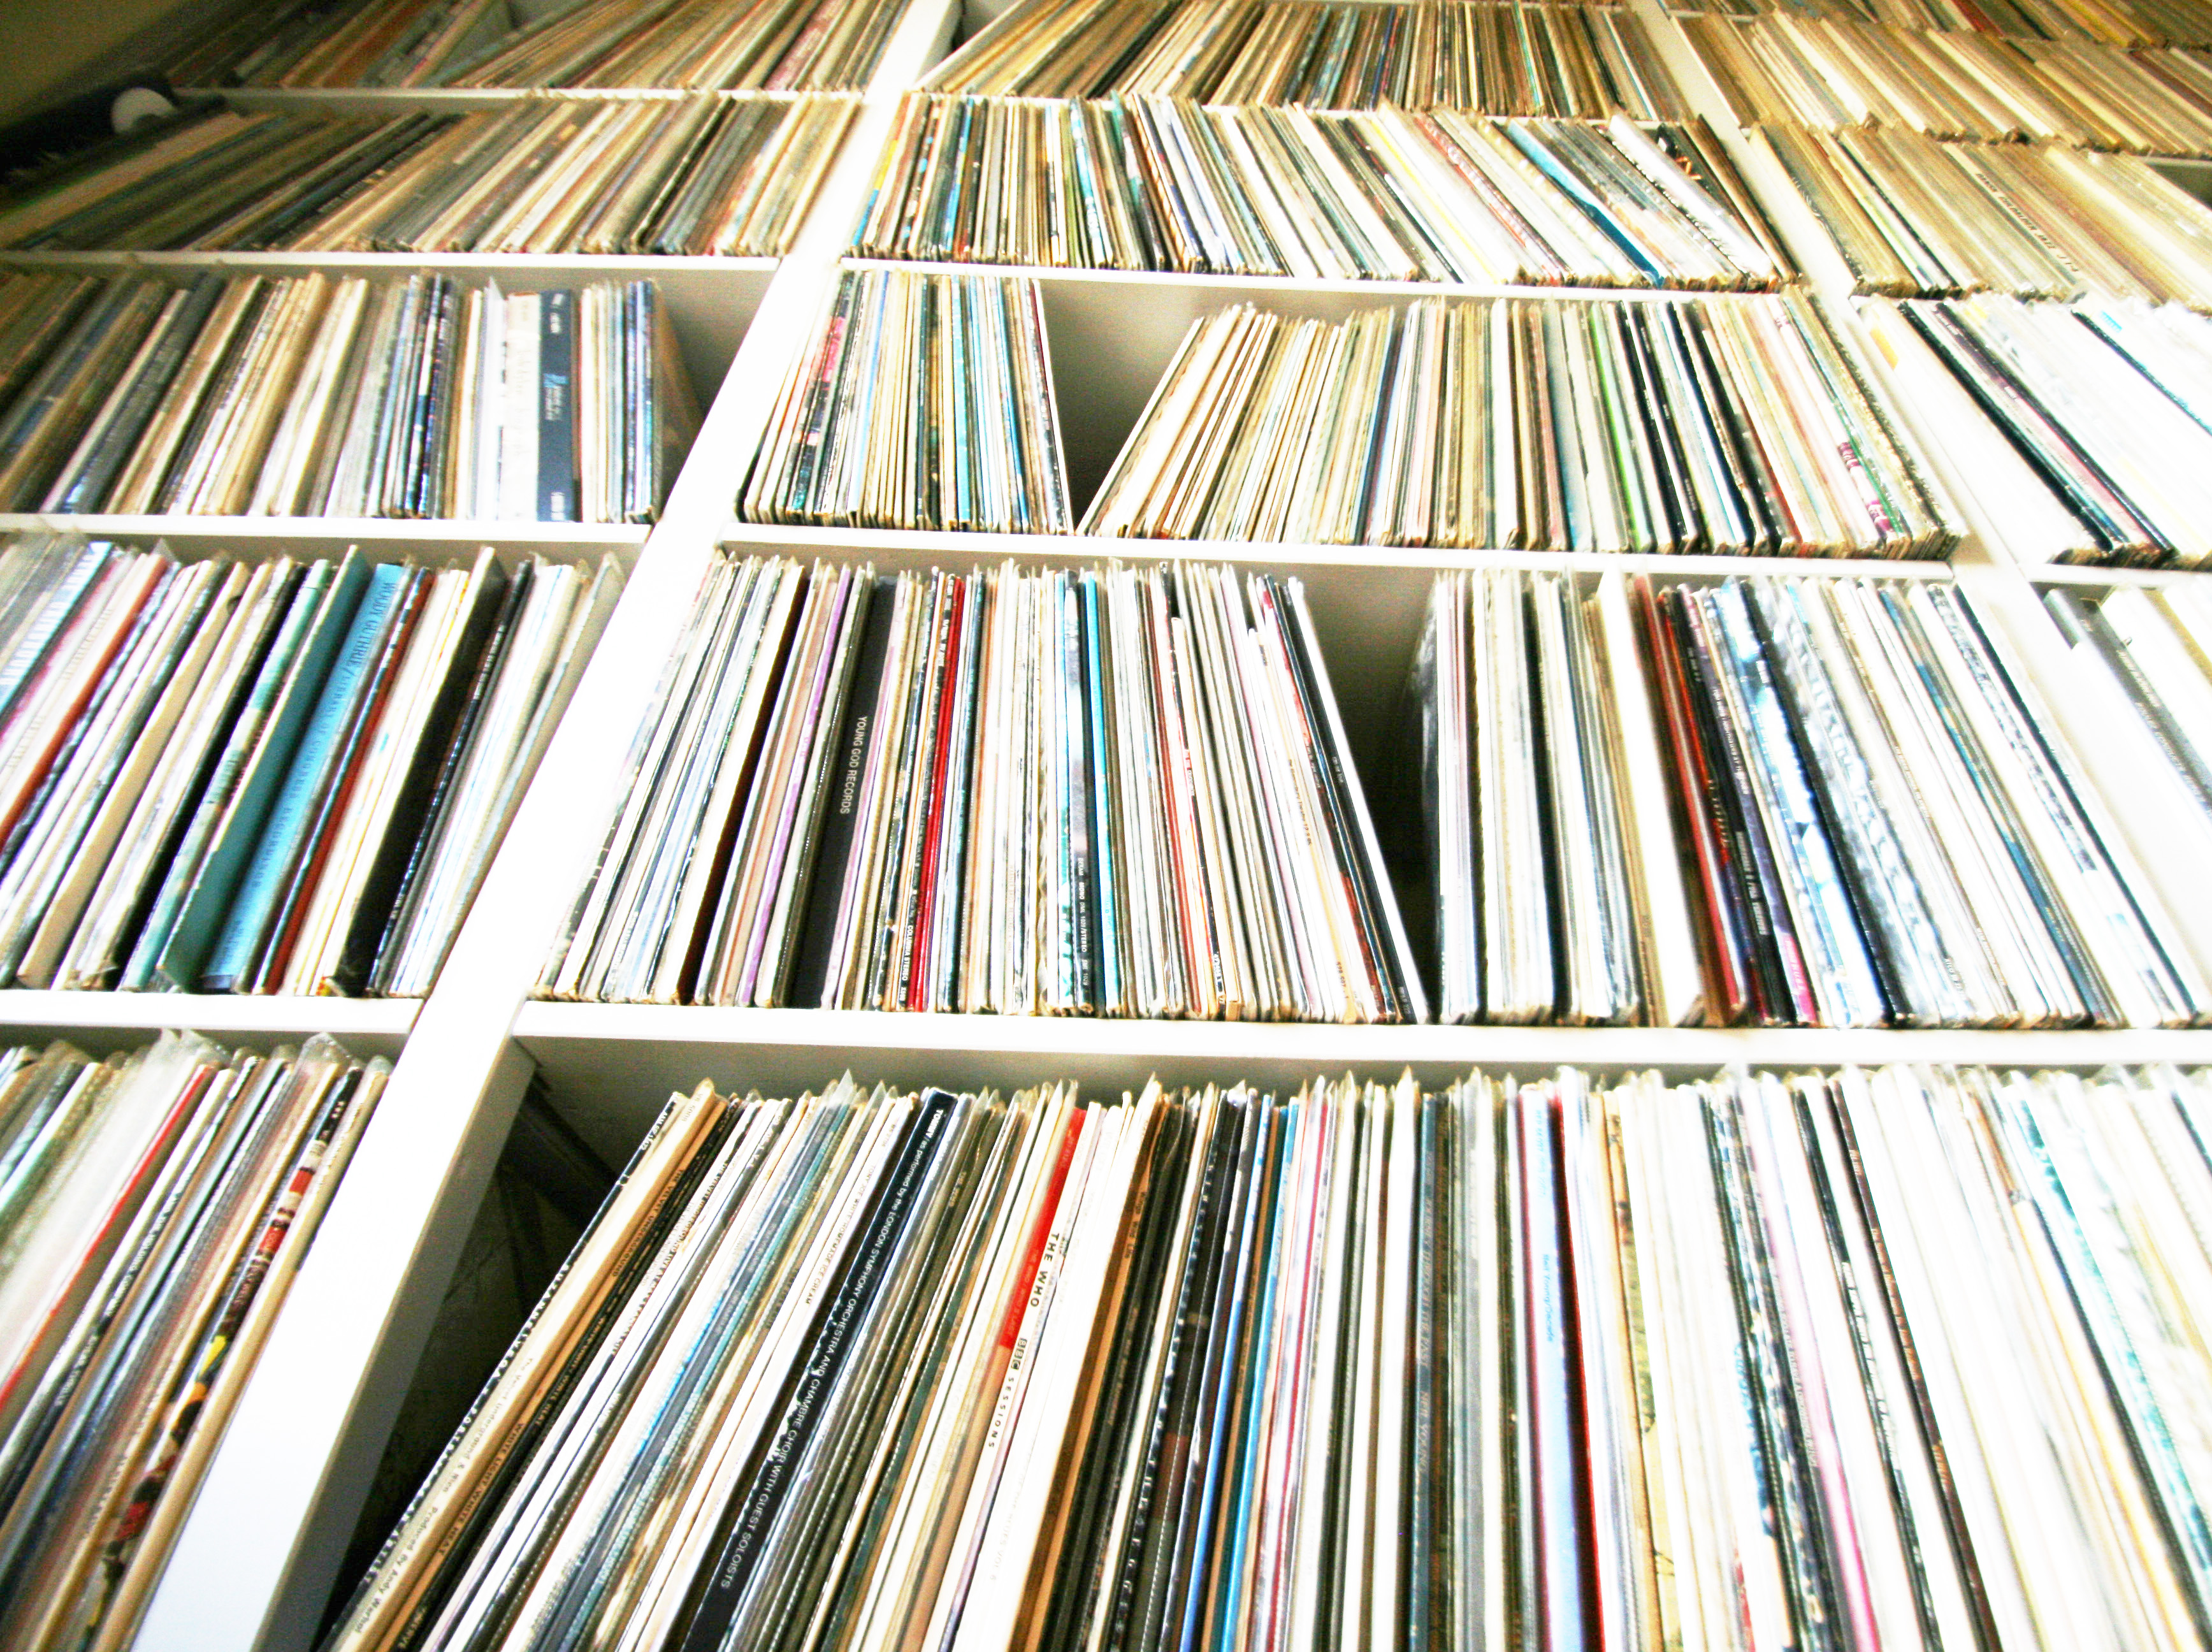 clemens records